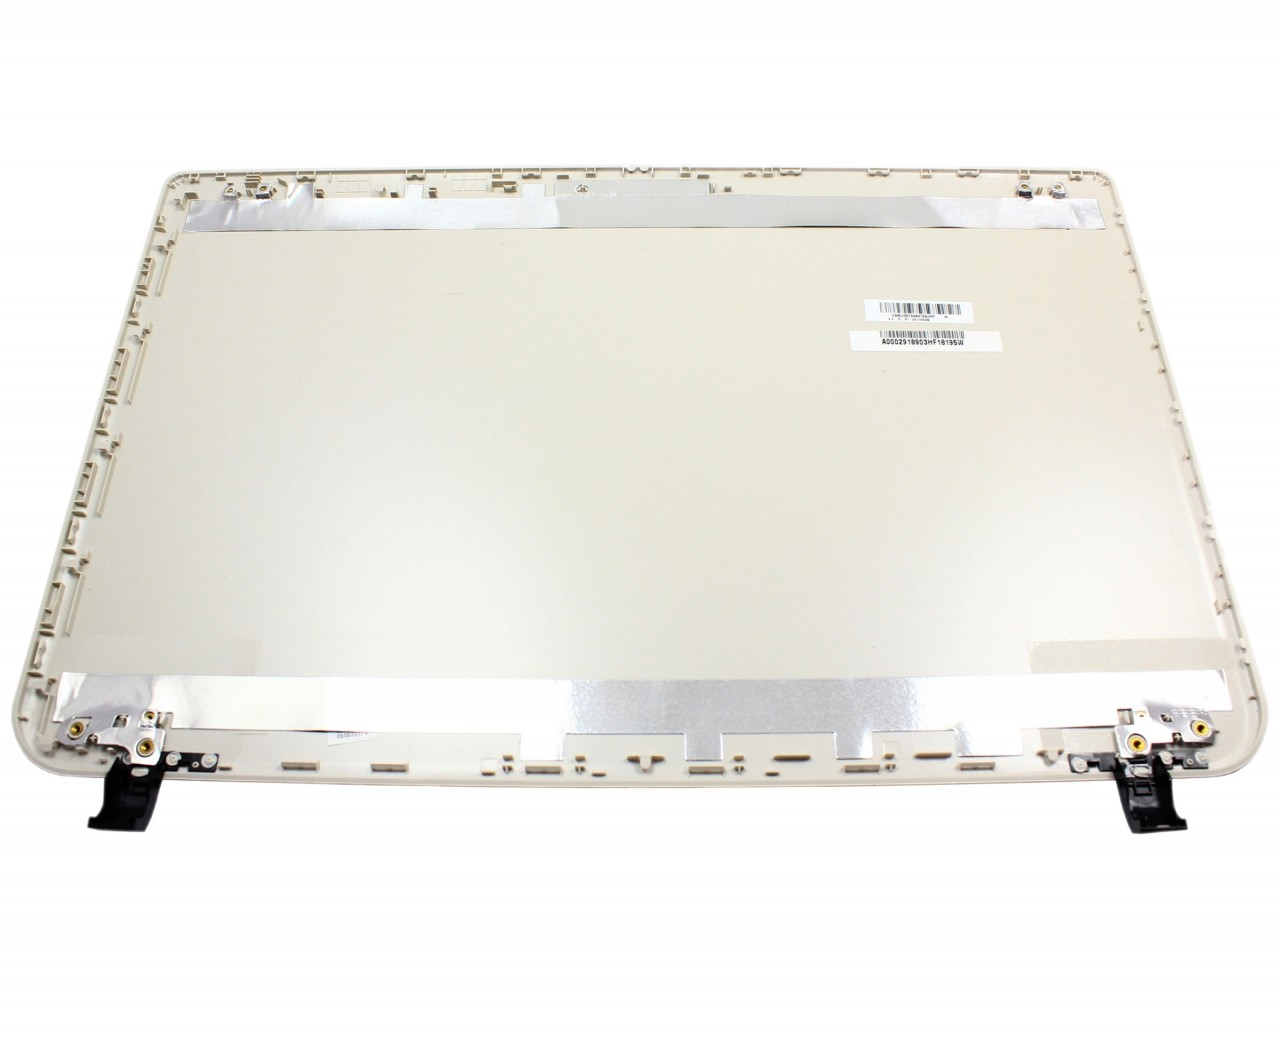 Capac Display BackCover Toshiba Satellite L55 B Carcasa Display Argintie imagine powerlaptop.ro 2021